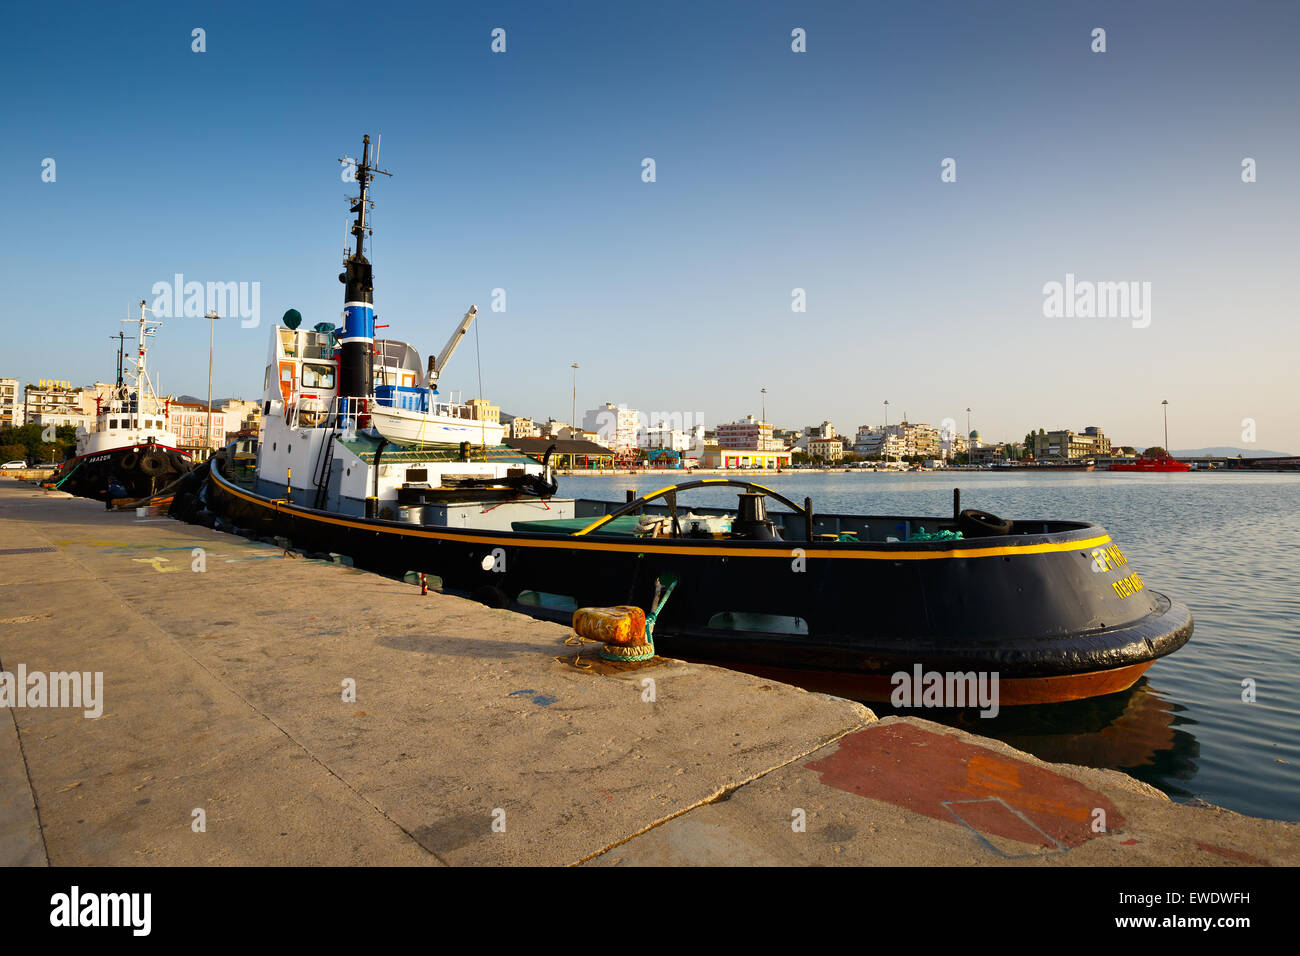 Tugs in the port of Patras, Peloponnese, Greece - Stock Image